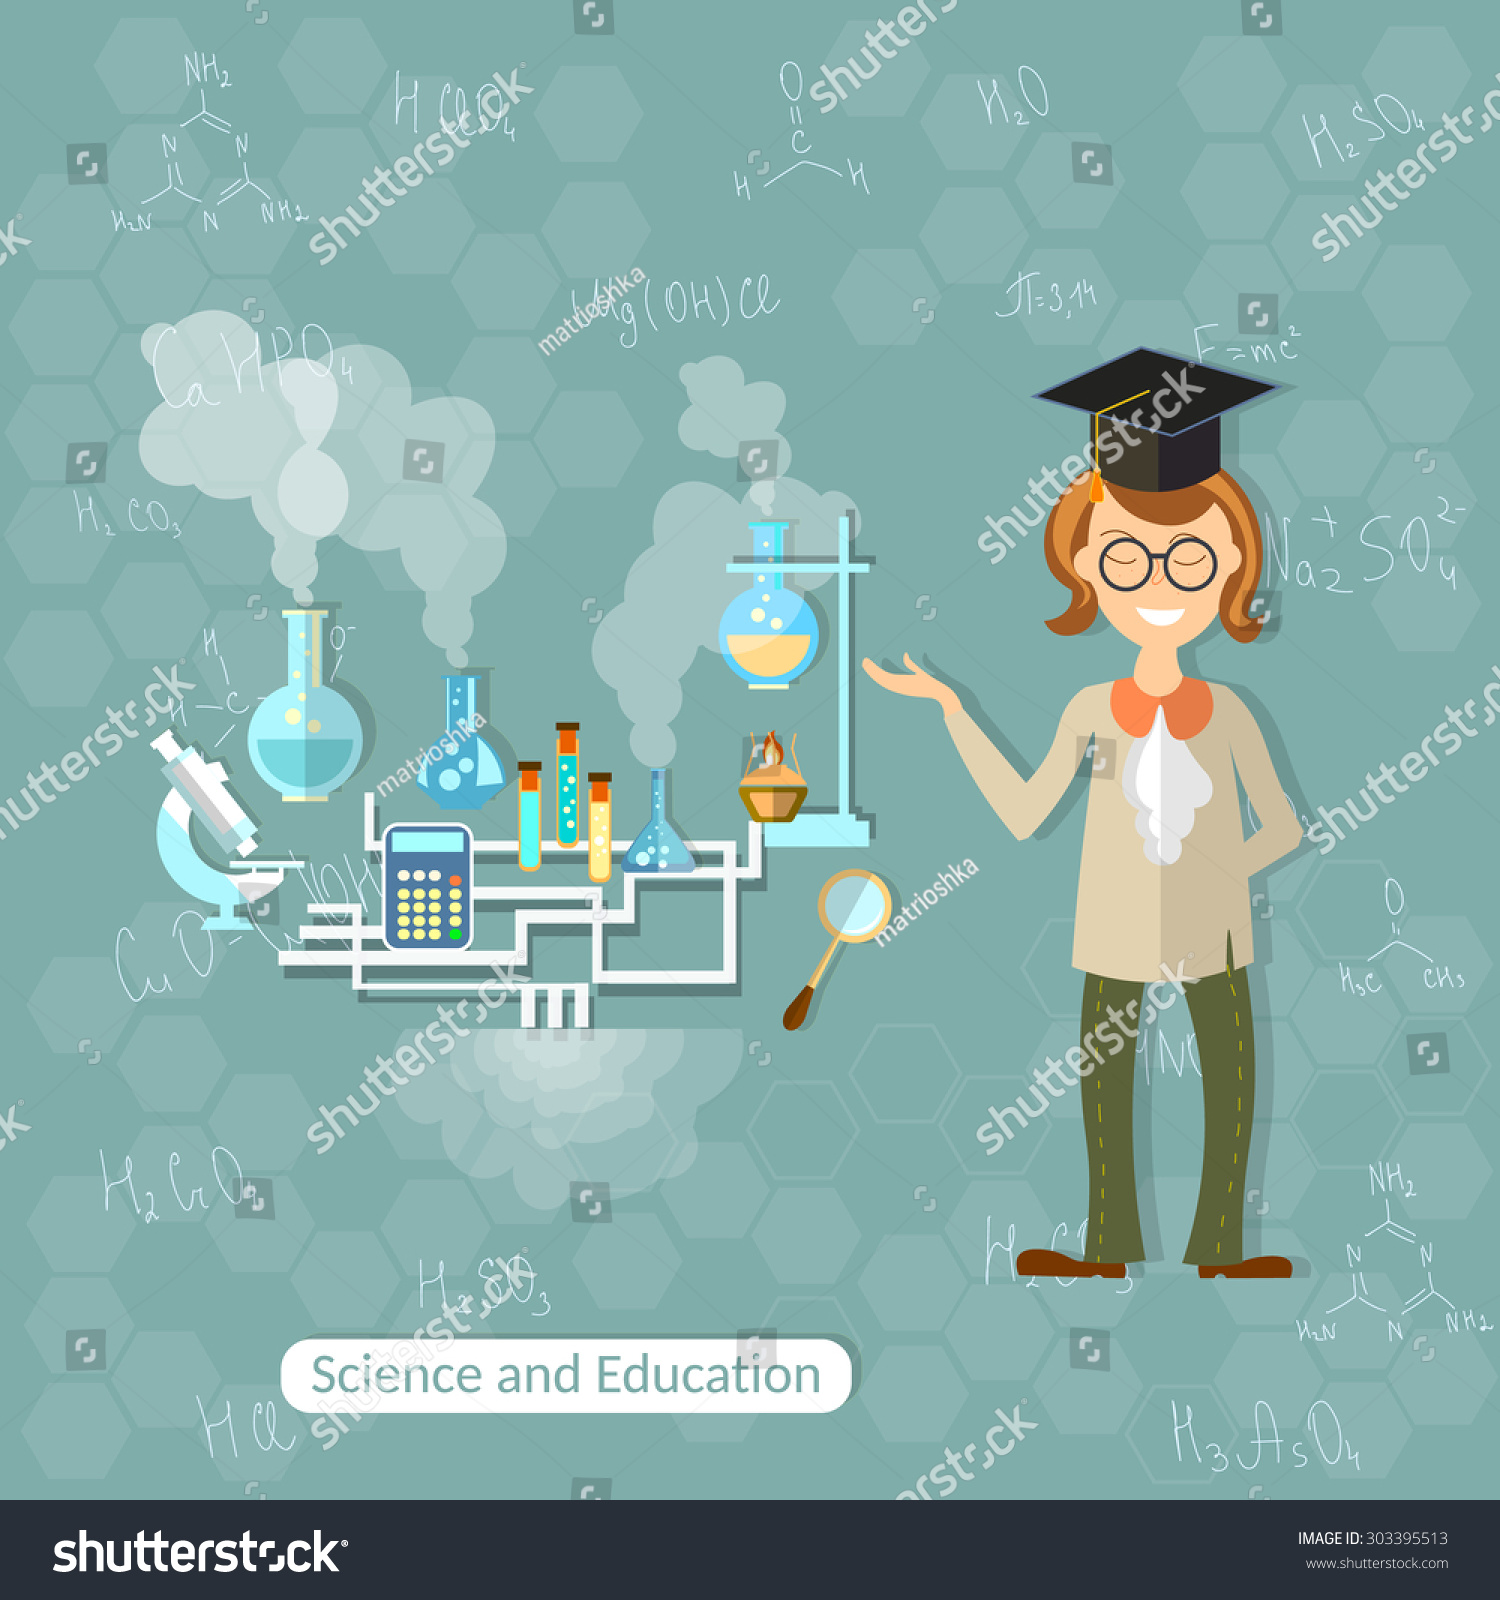 science education professor teacher research chemistry stock  science and education professor teacher research chemistry experiment laboratory students back to school college university physics